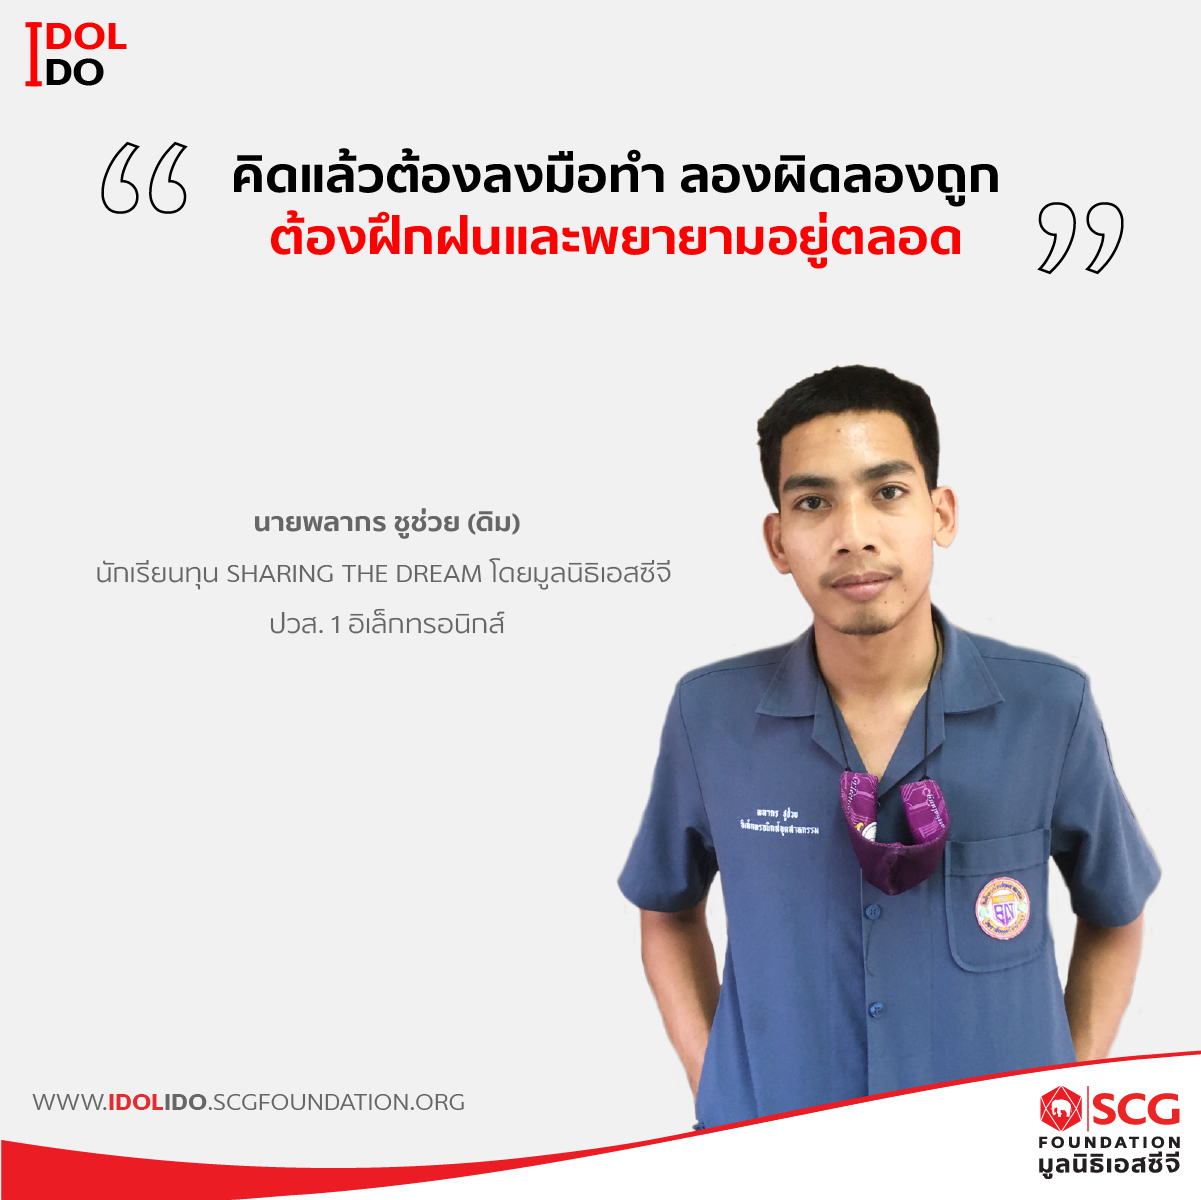 AW_Website_SCGF_Page_Goal_on_ดิม-01